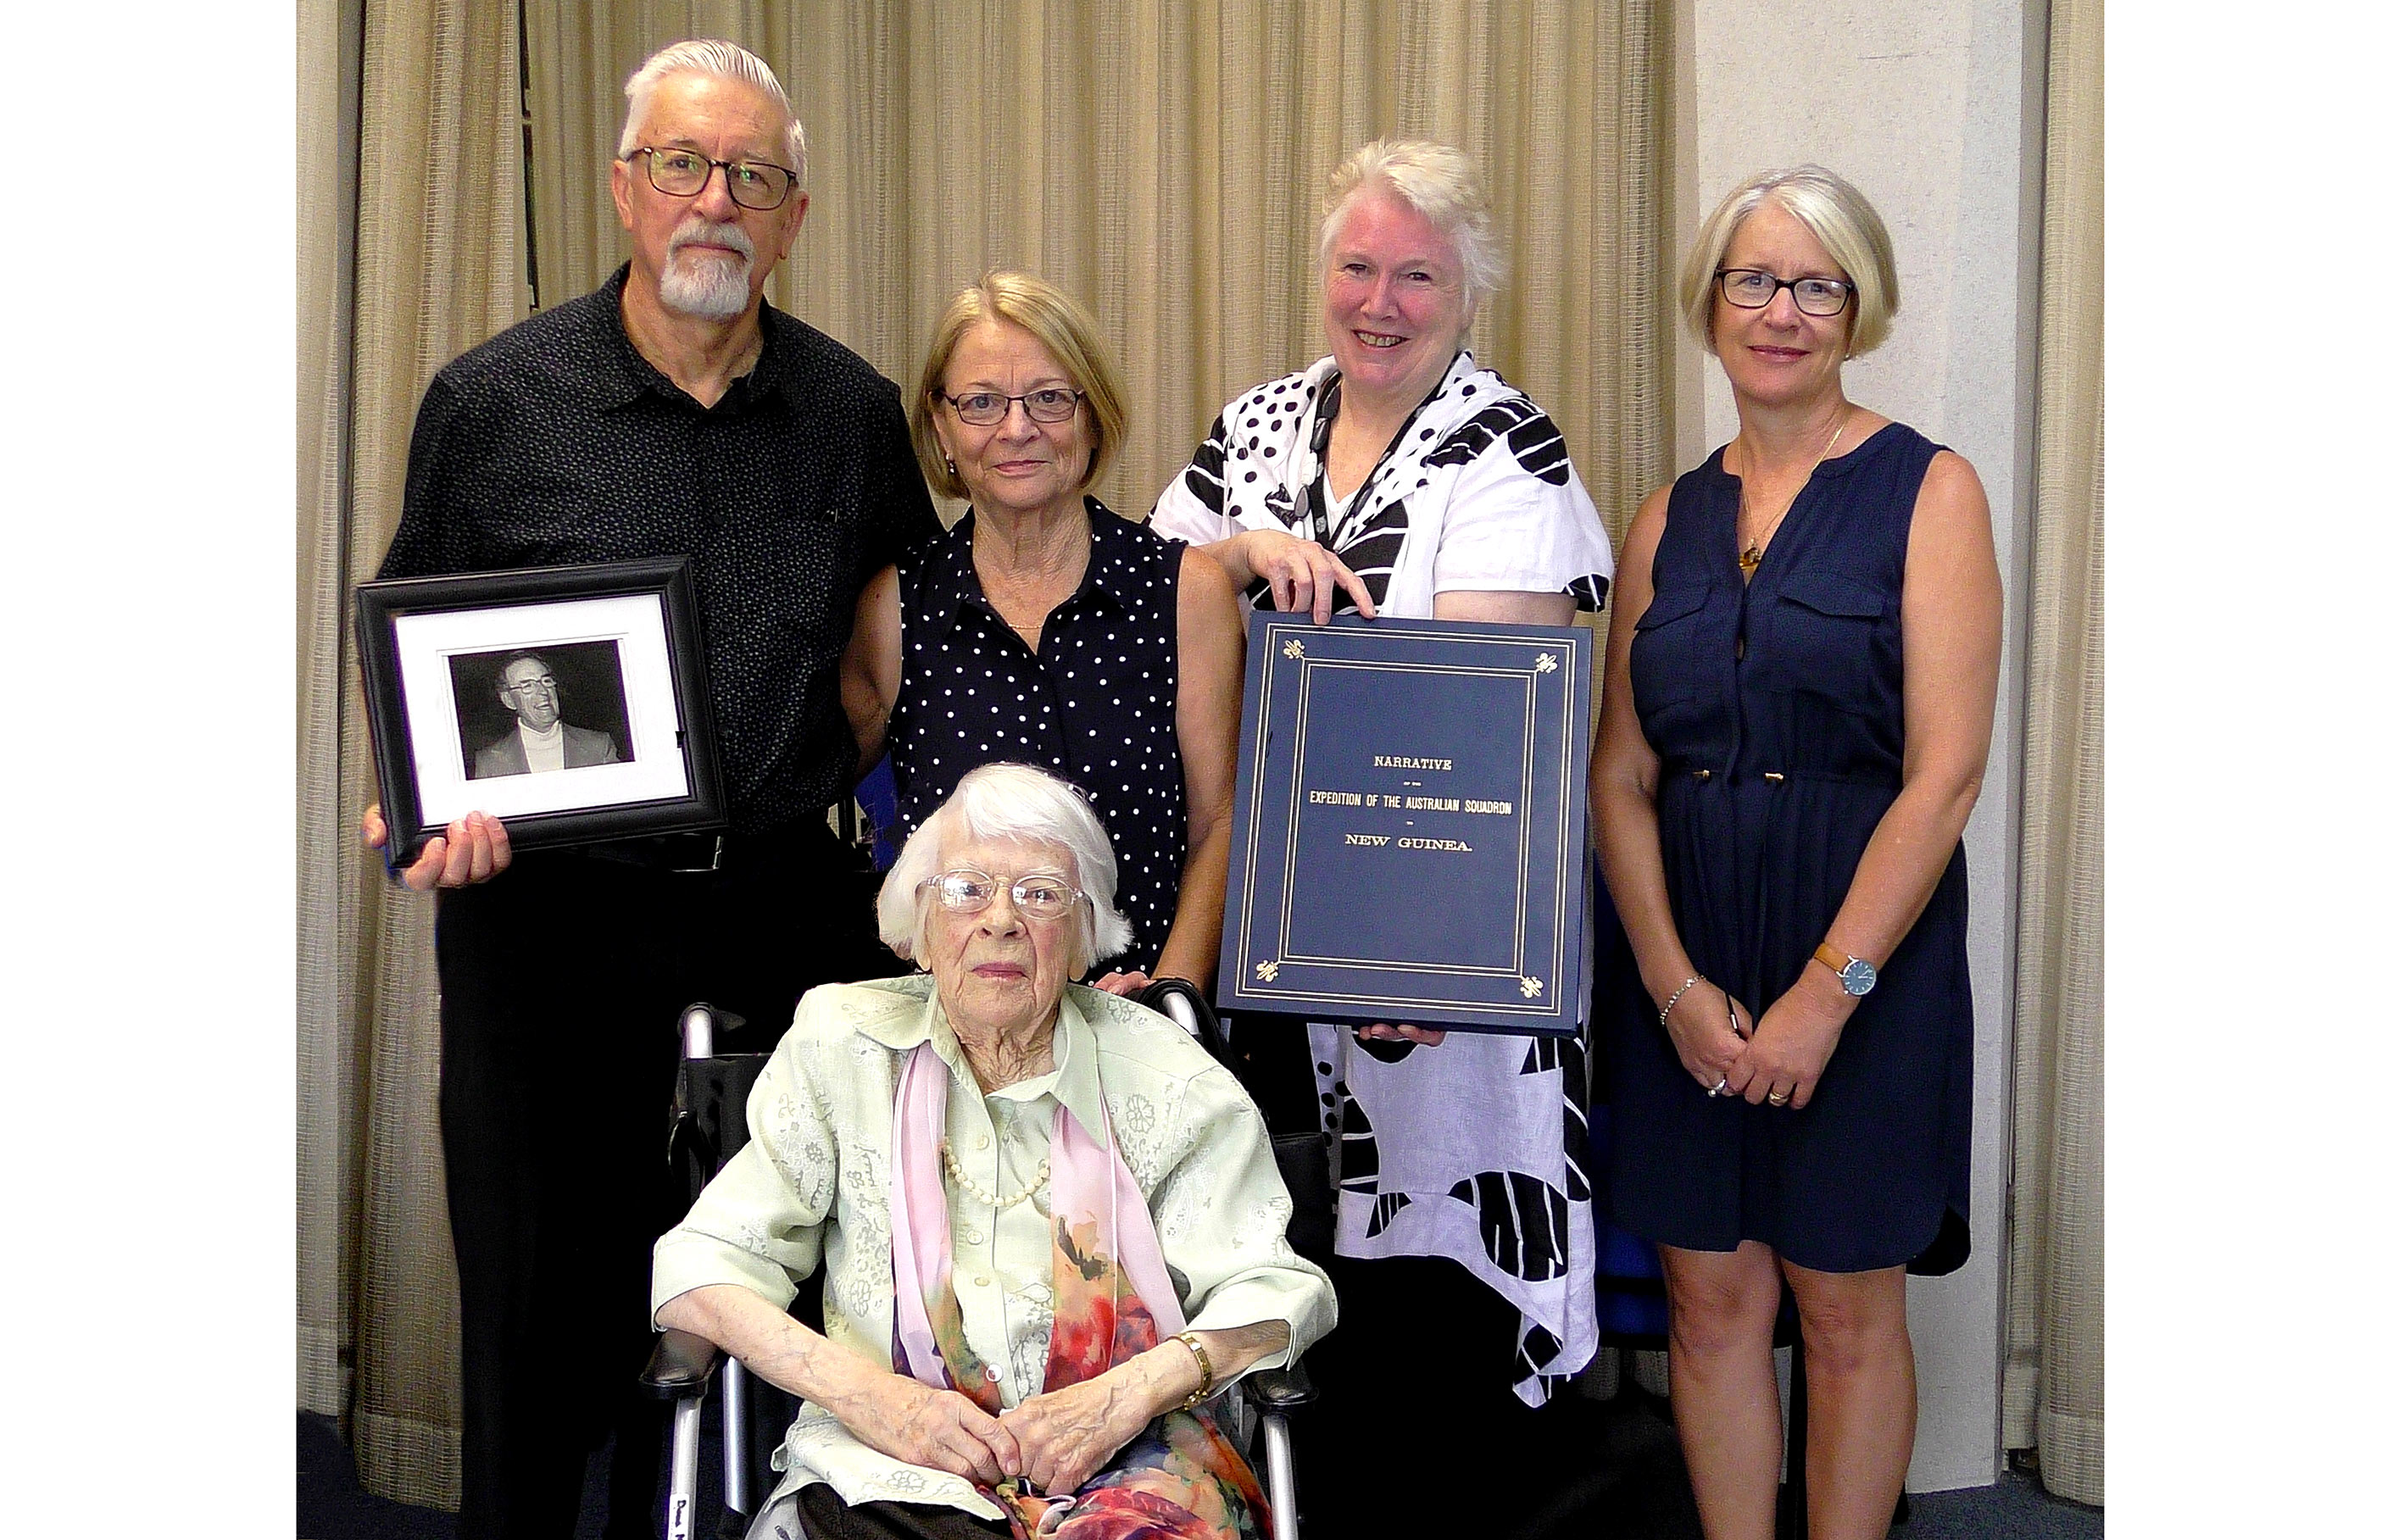 McAlpin family with University Librarian Roxanne Missingham